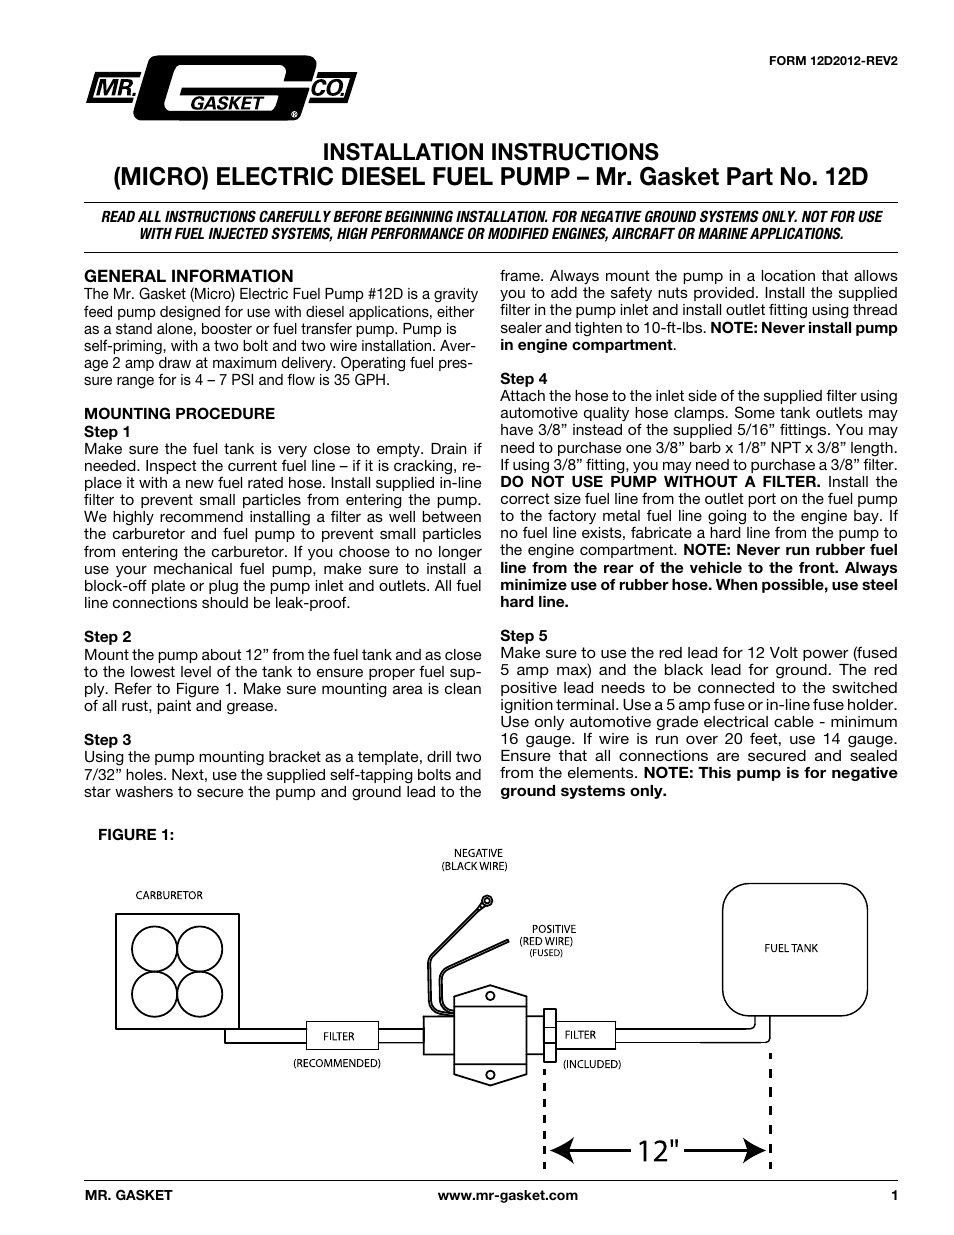 mallory ignition mr_gasket electric (micro) diesel fuel pump 12d user manual  | 4 pages